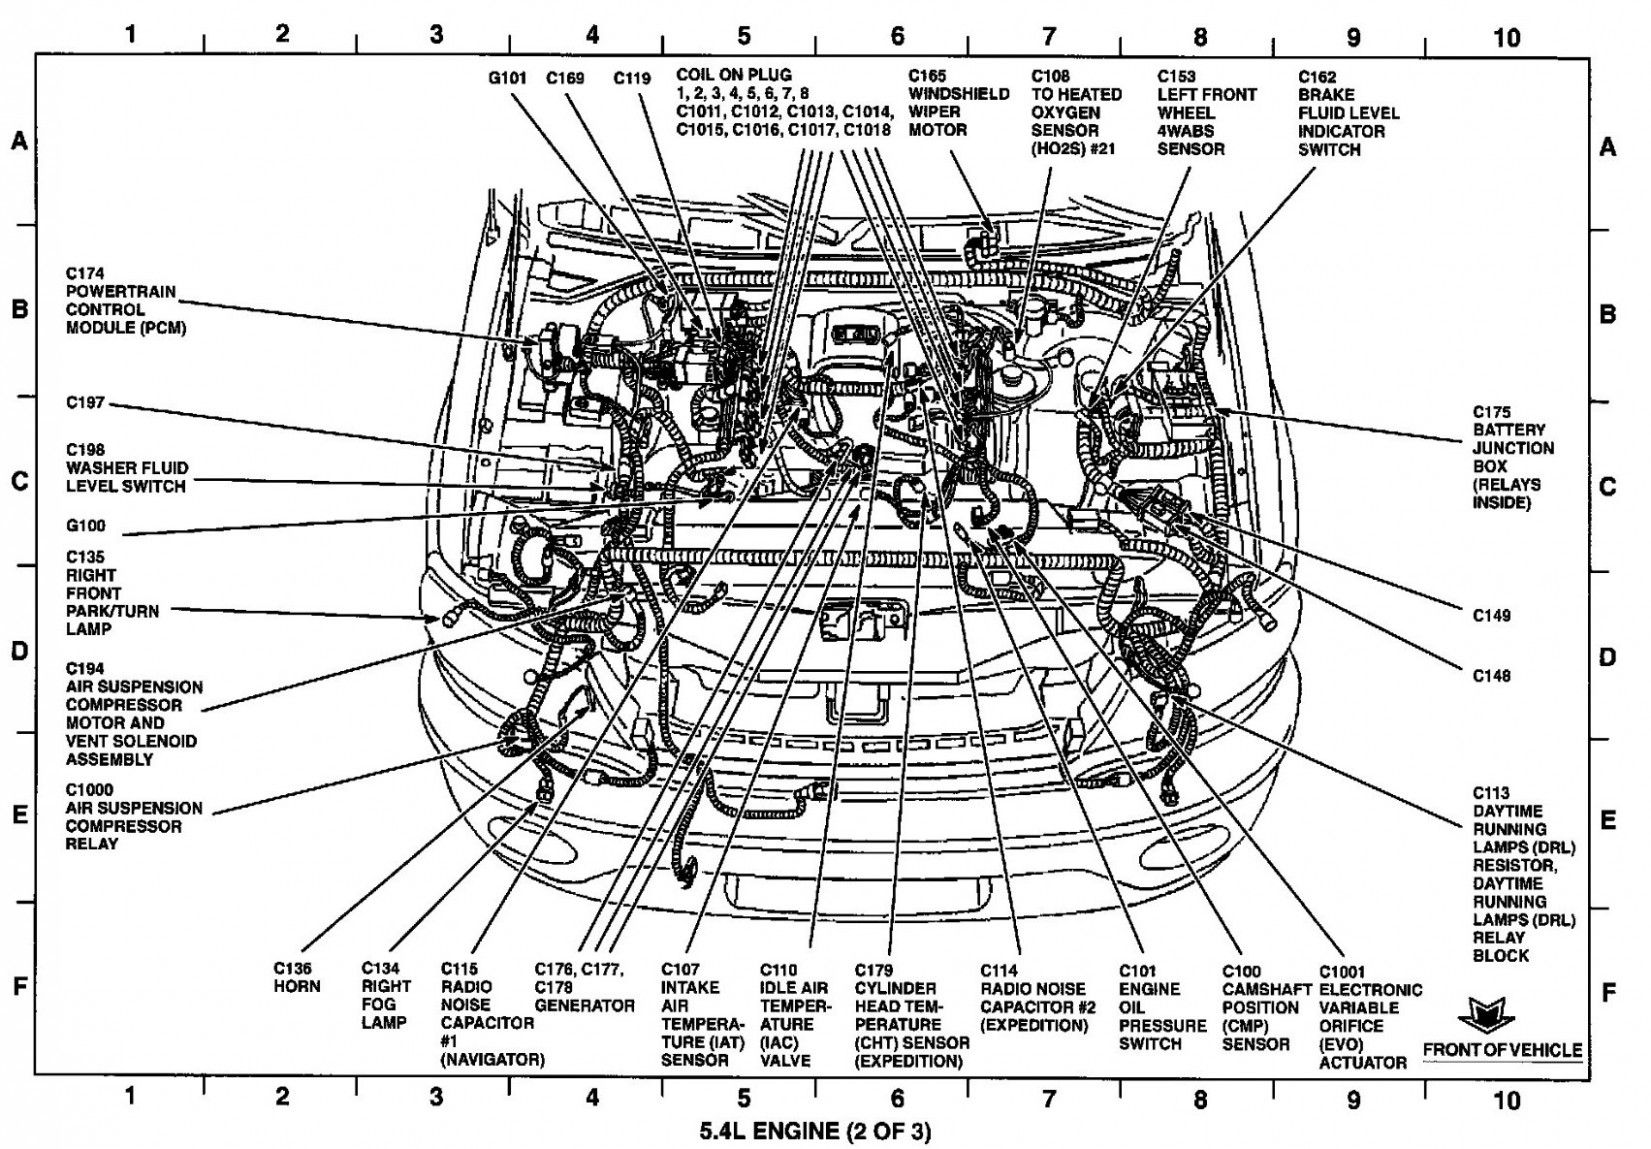 7 Ford Escape V7 Engine Diagram In 2020 Ford Focus Engine Ford